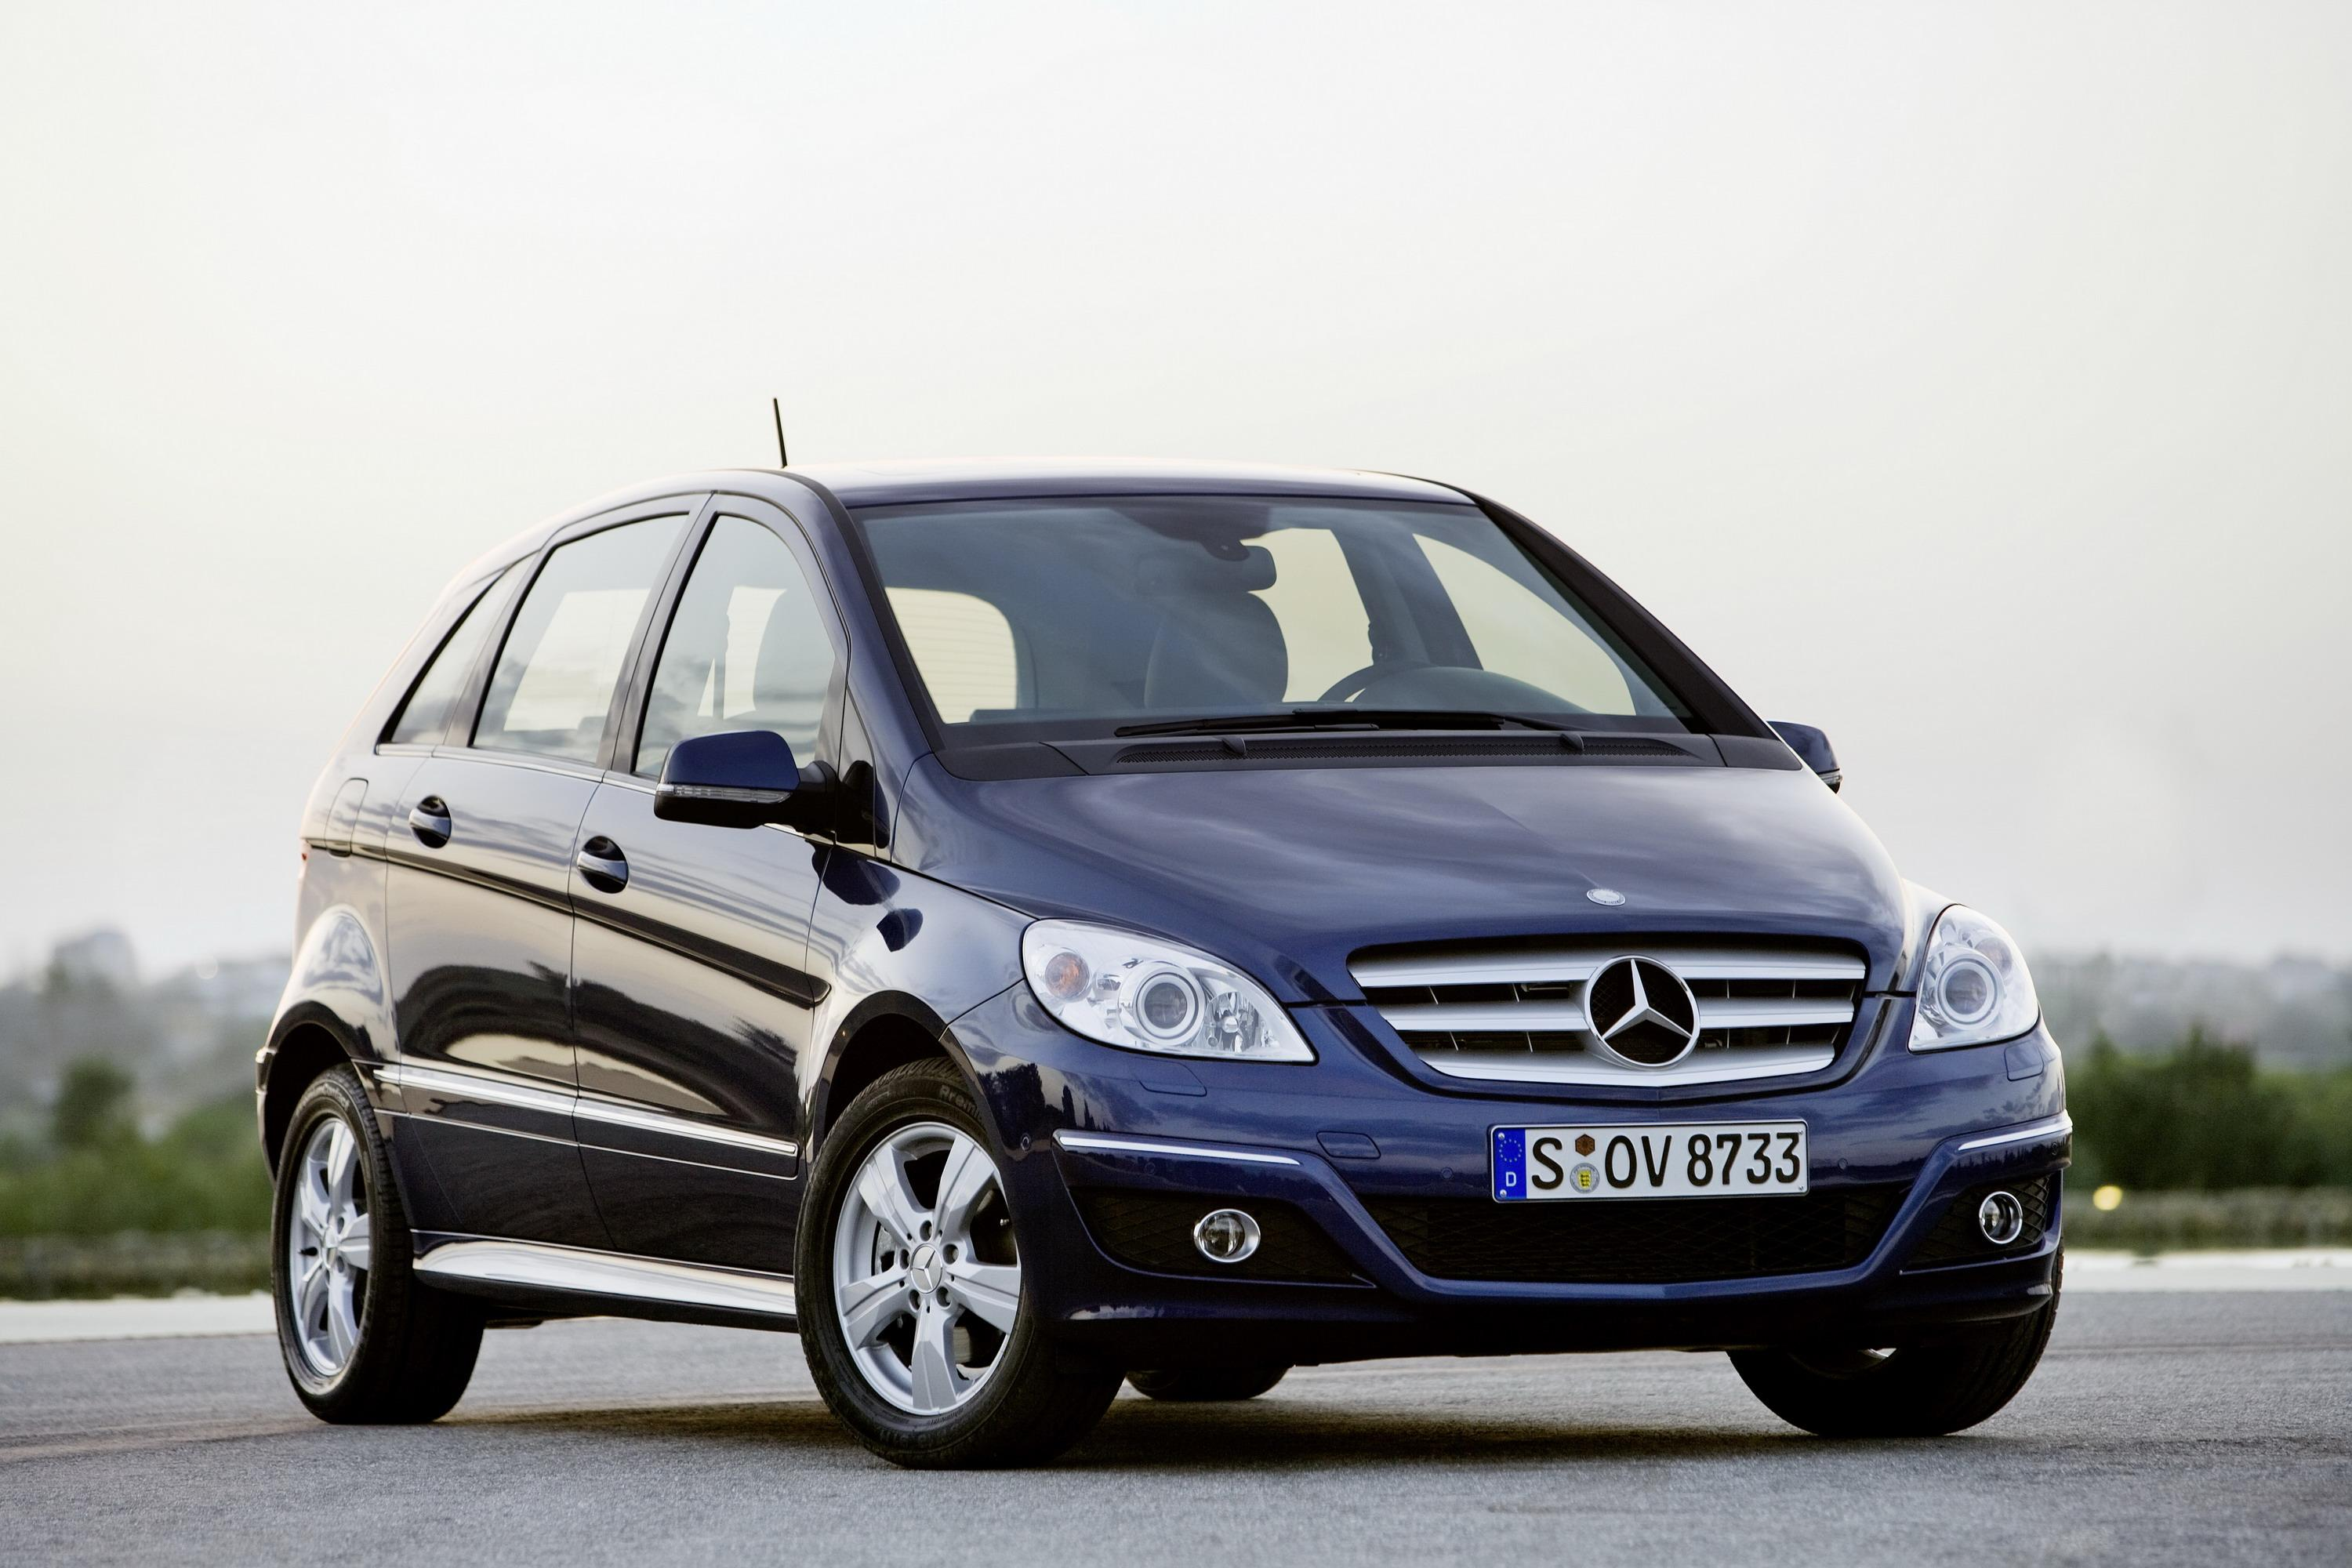 2009 mercedes b class pictures photos wallpapers top. Black Bedroom Furniture Sets. Home Design Ideas